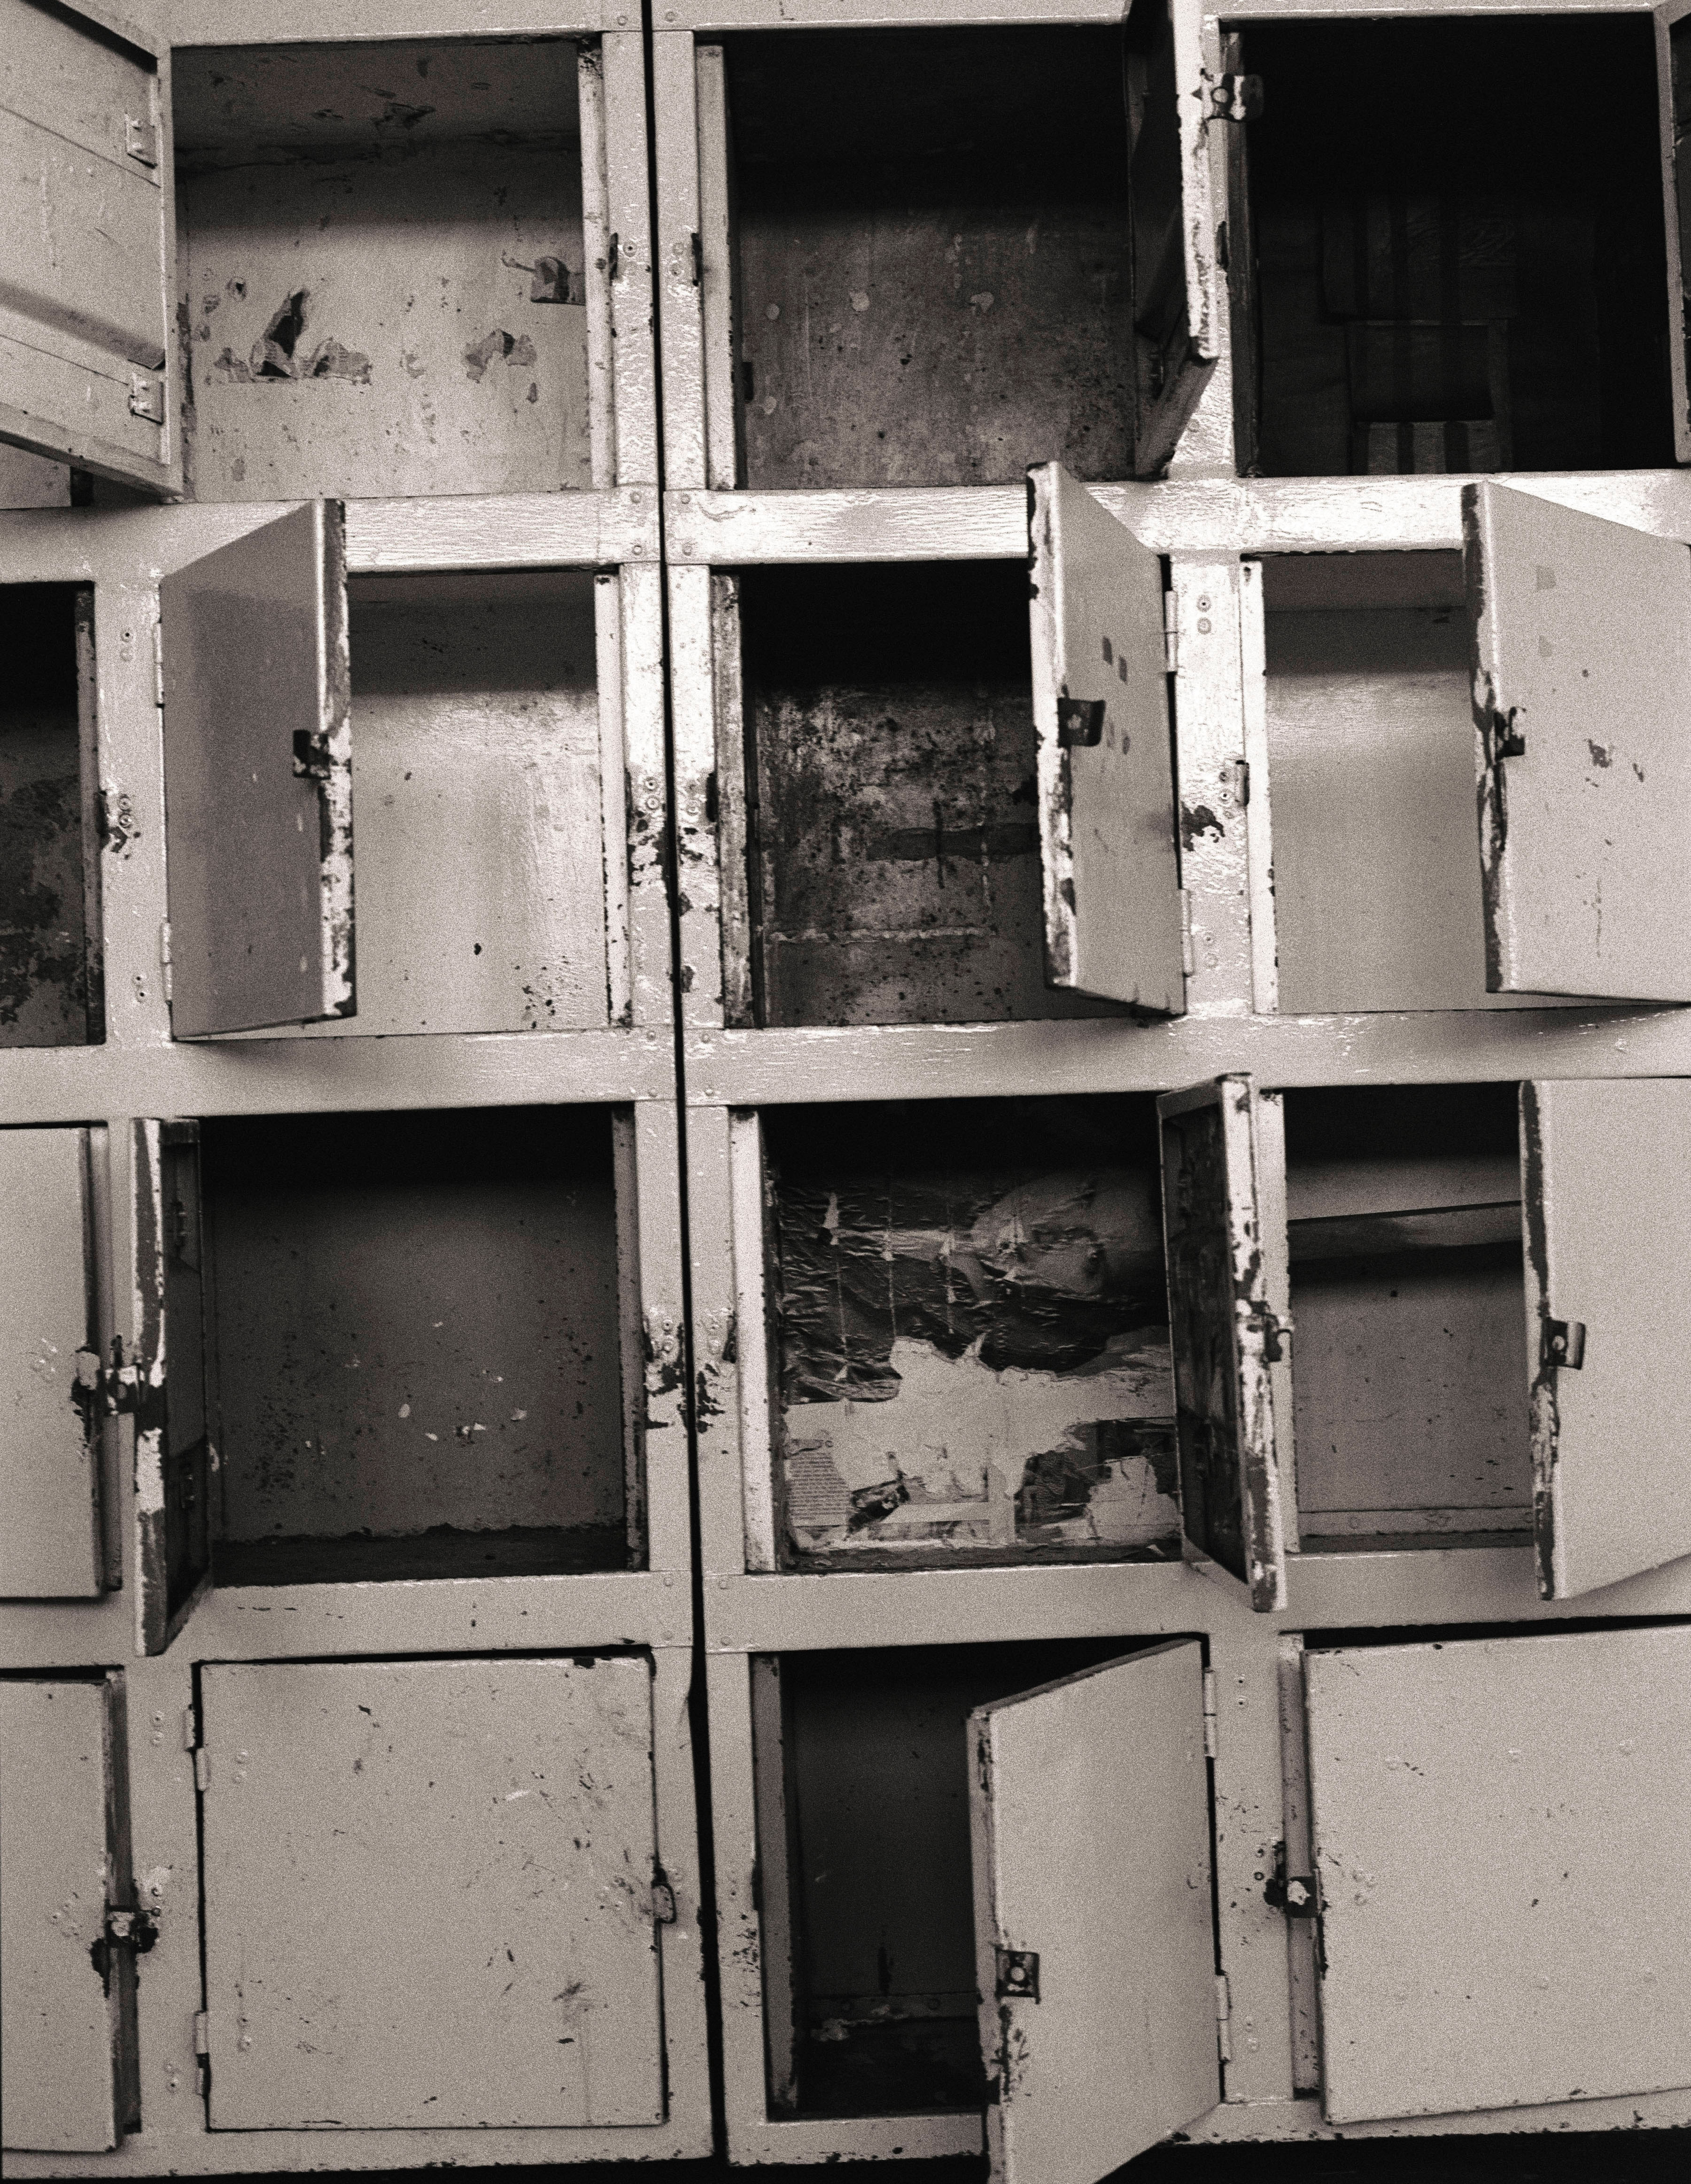 A bank of lockers in the large communal cell provided storage for prisoners' possessions.                                                                                             1992